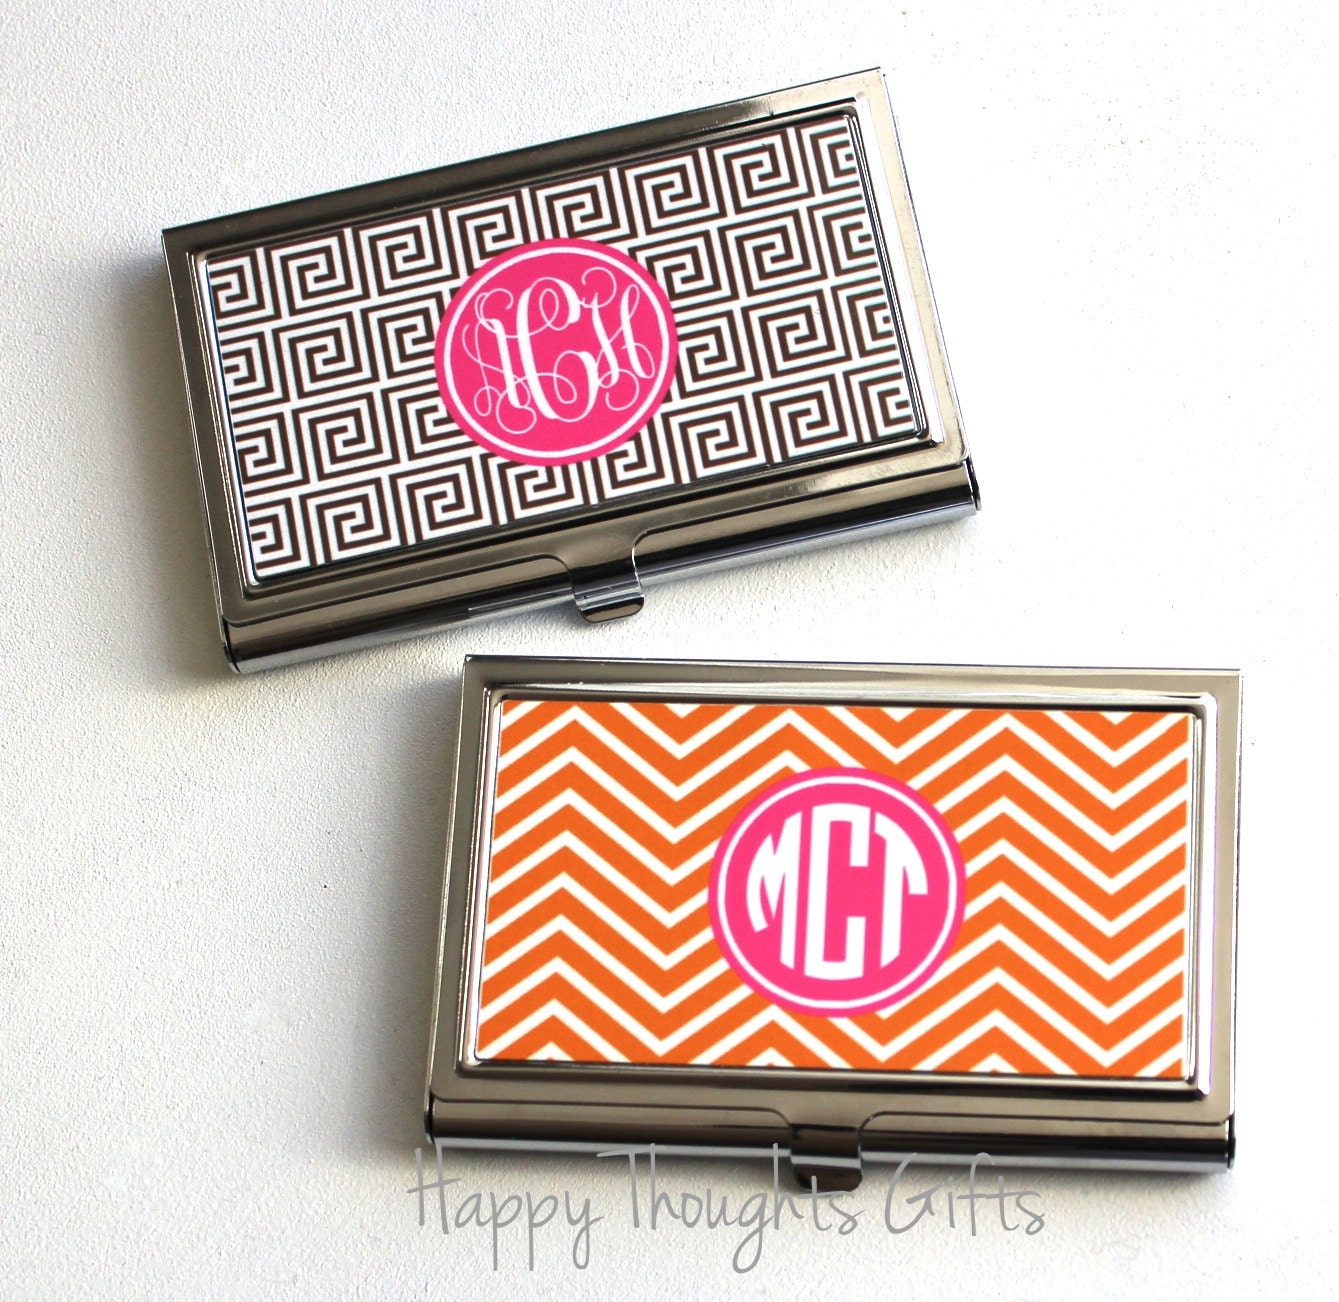 Monogrammed business card holder unlimitedgamers monogrammed business card holder colourmoves